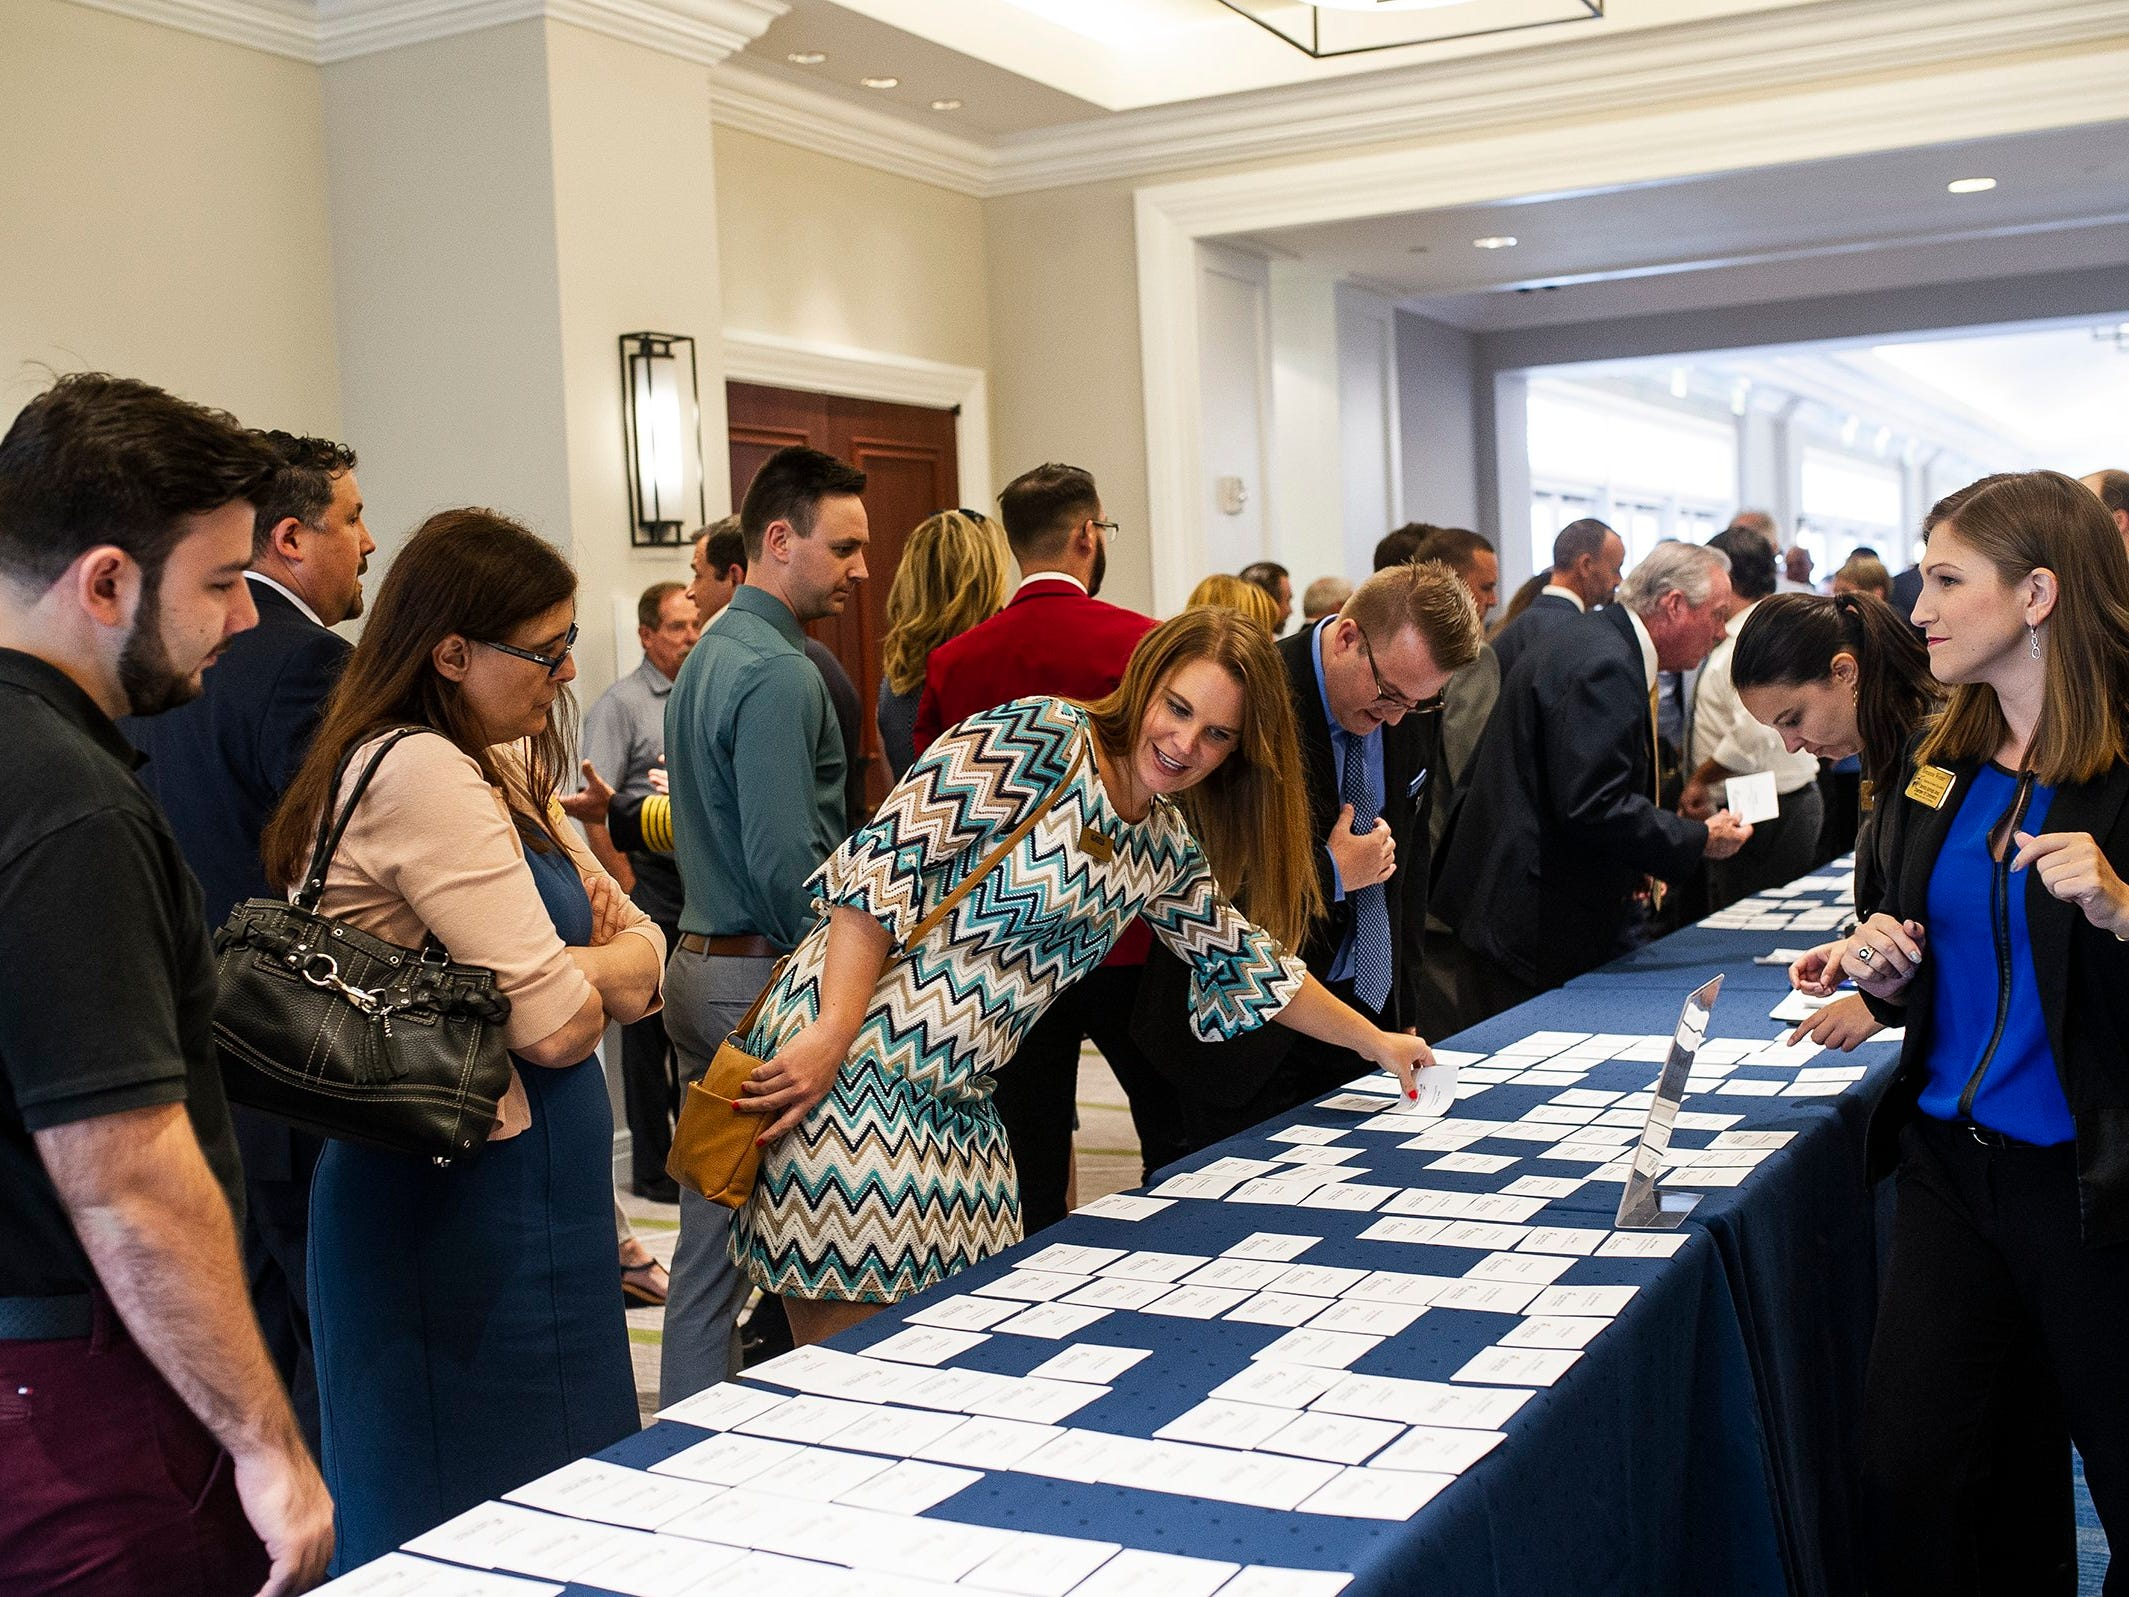 Members check in during the Bonita Springs Area Chamber of Commerce Awards Luncheon at the Hyatt Regency Coconut Point in Estero on Thursday, Aug. 30, 2018.